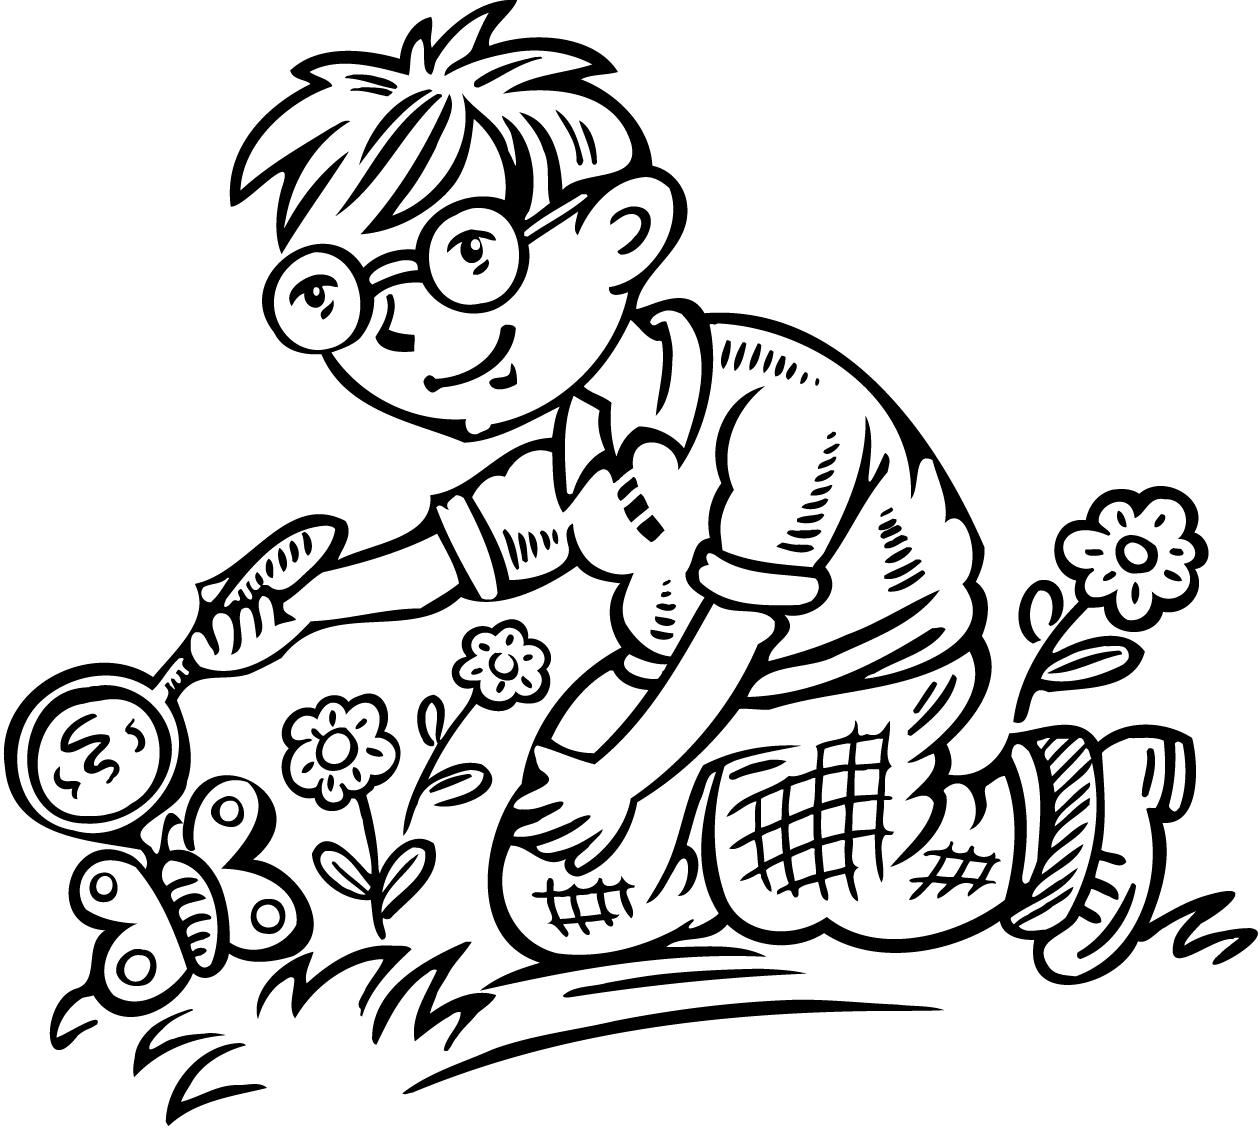 coloring sheet of a boy looking at a butterfly through a magnifying